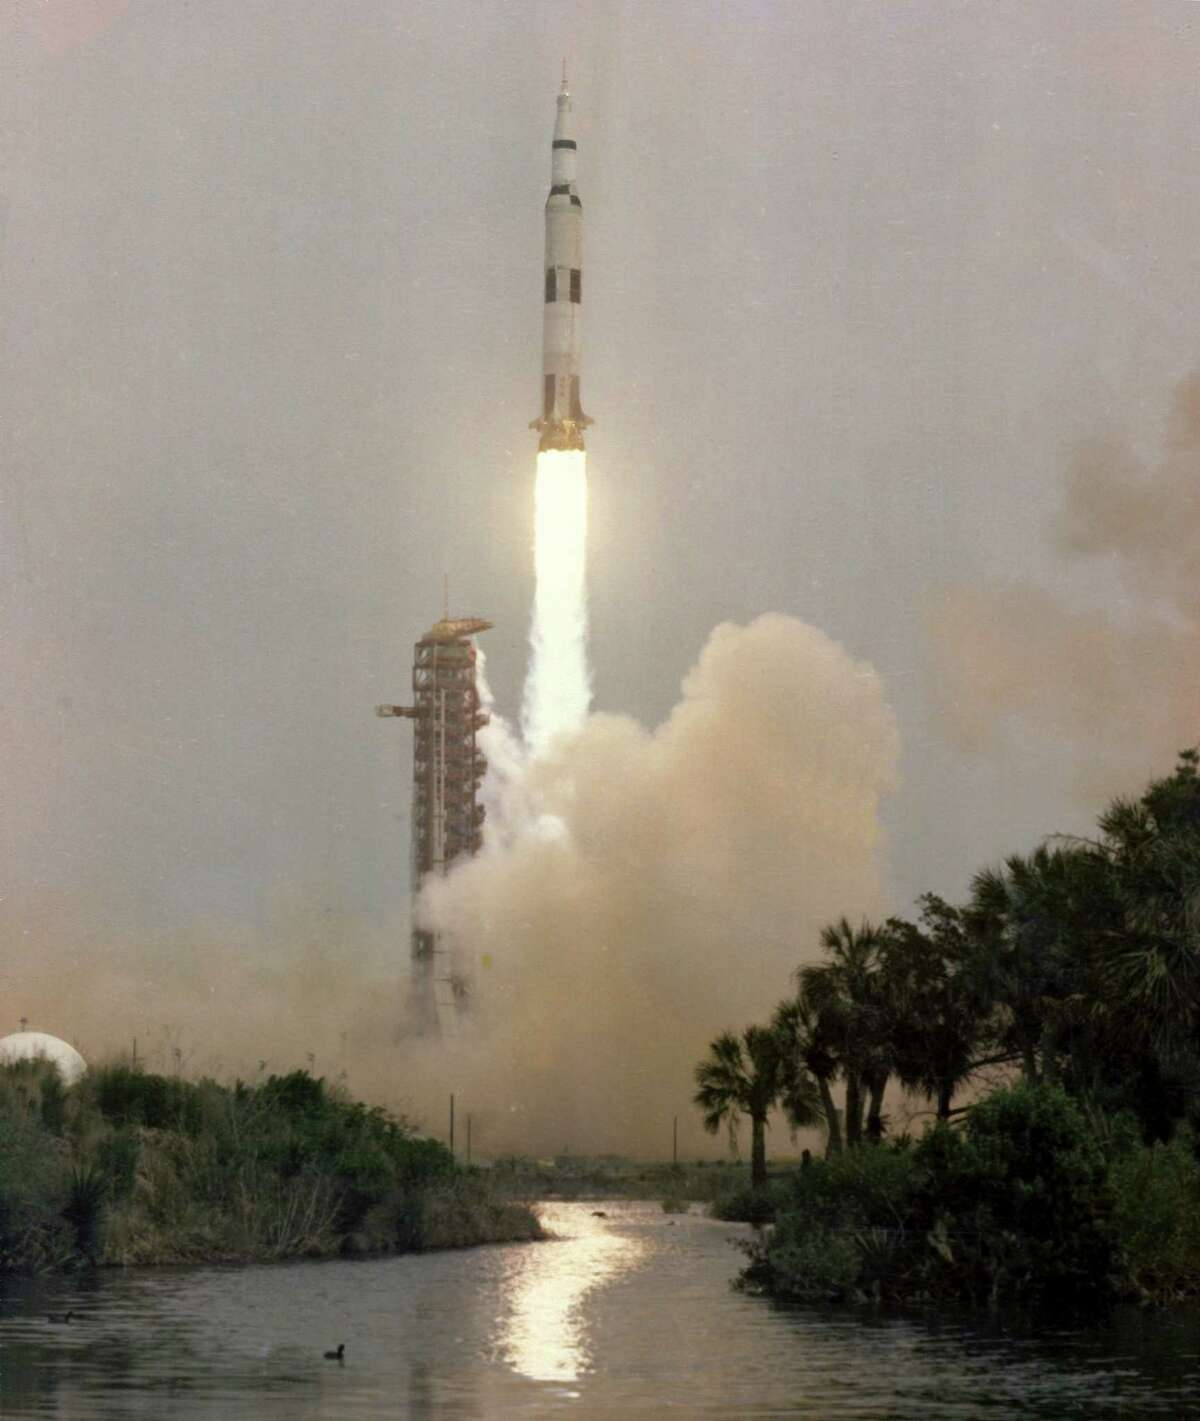 Apollo 13 Launching From Kennedy Space Center, Cape Canaveral, Fla., April 11, 1970. It was to be the third mission in which humans would land on the moon.